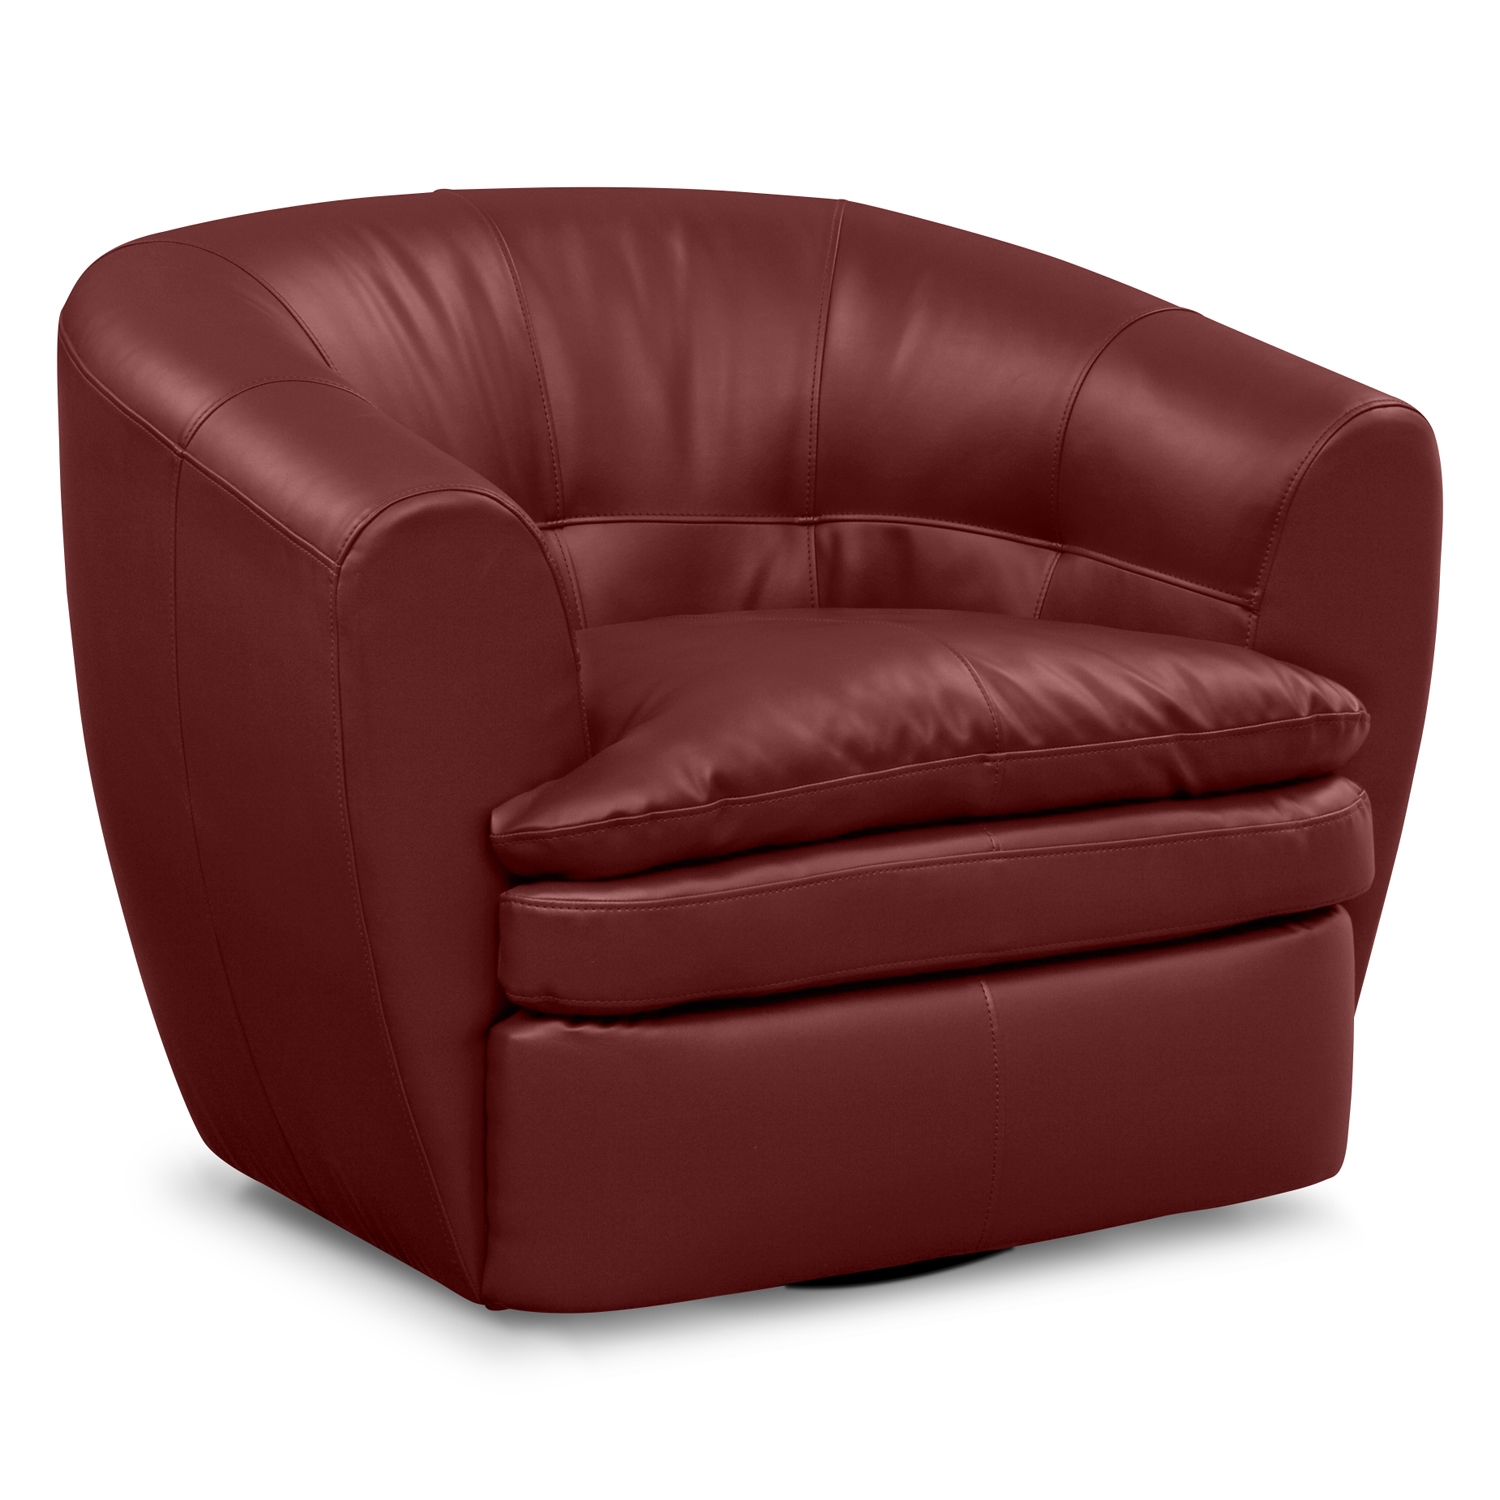 Image of: Concept Swivel Accent Chair